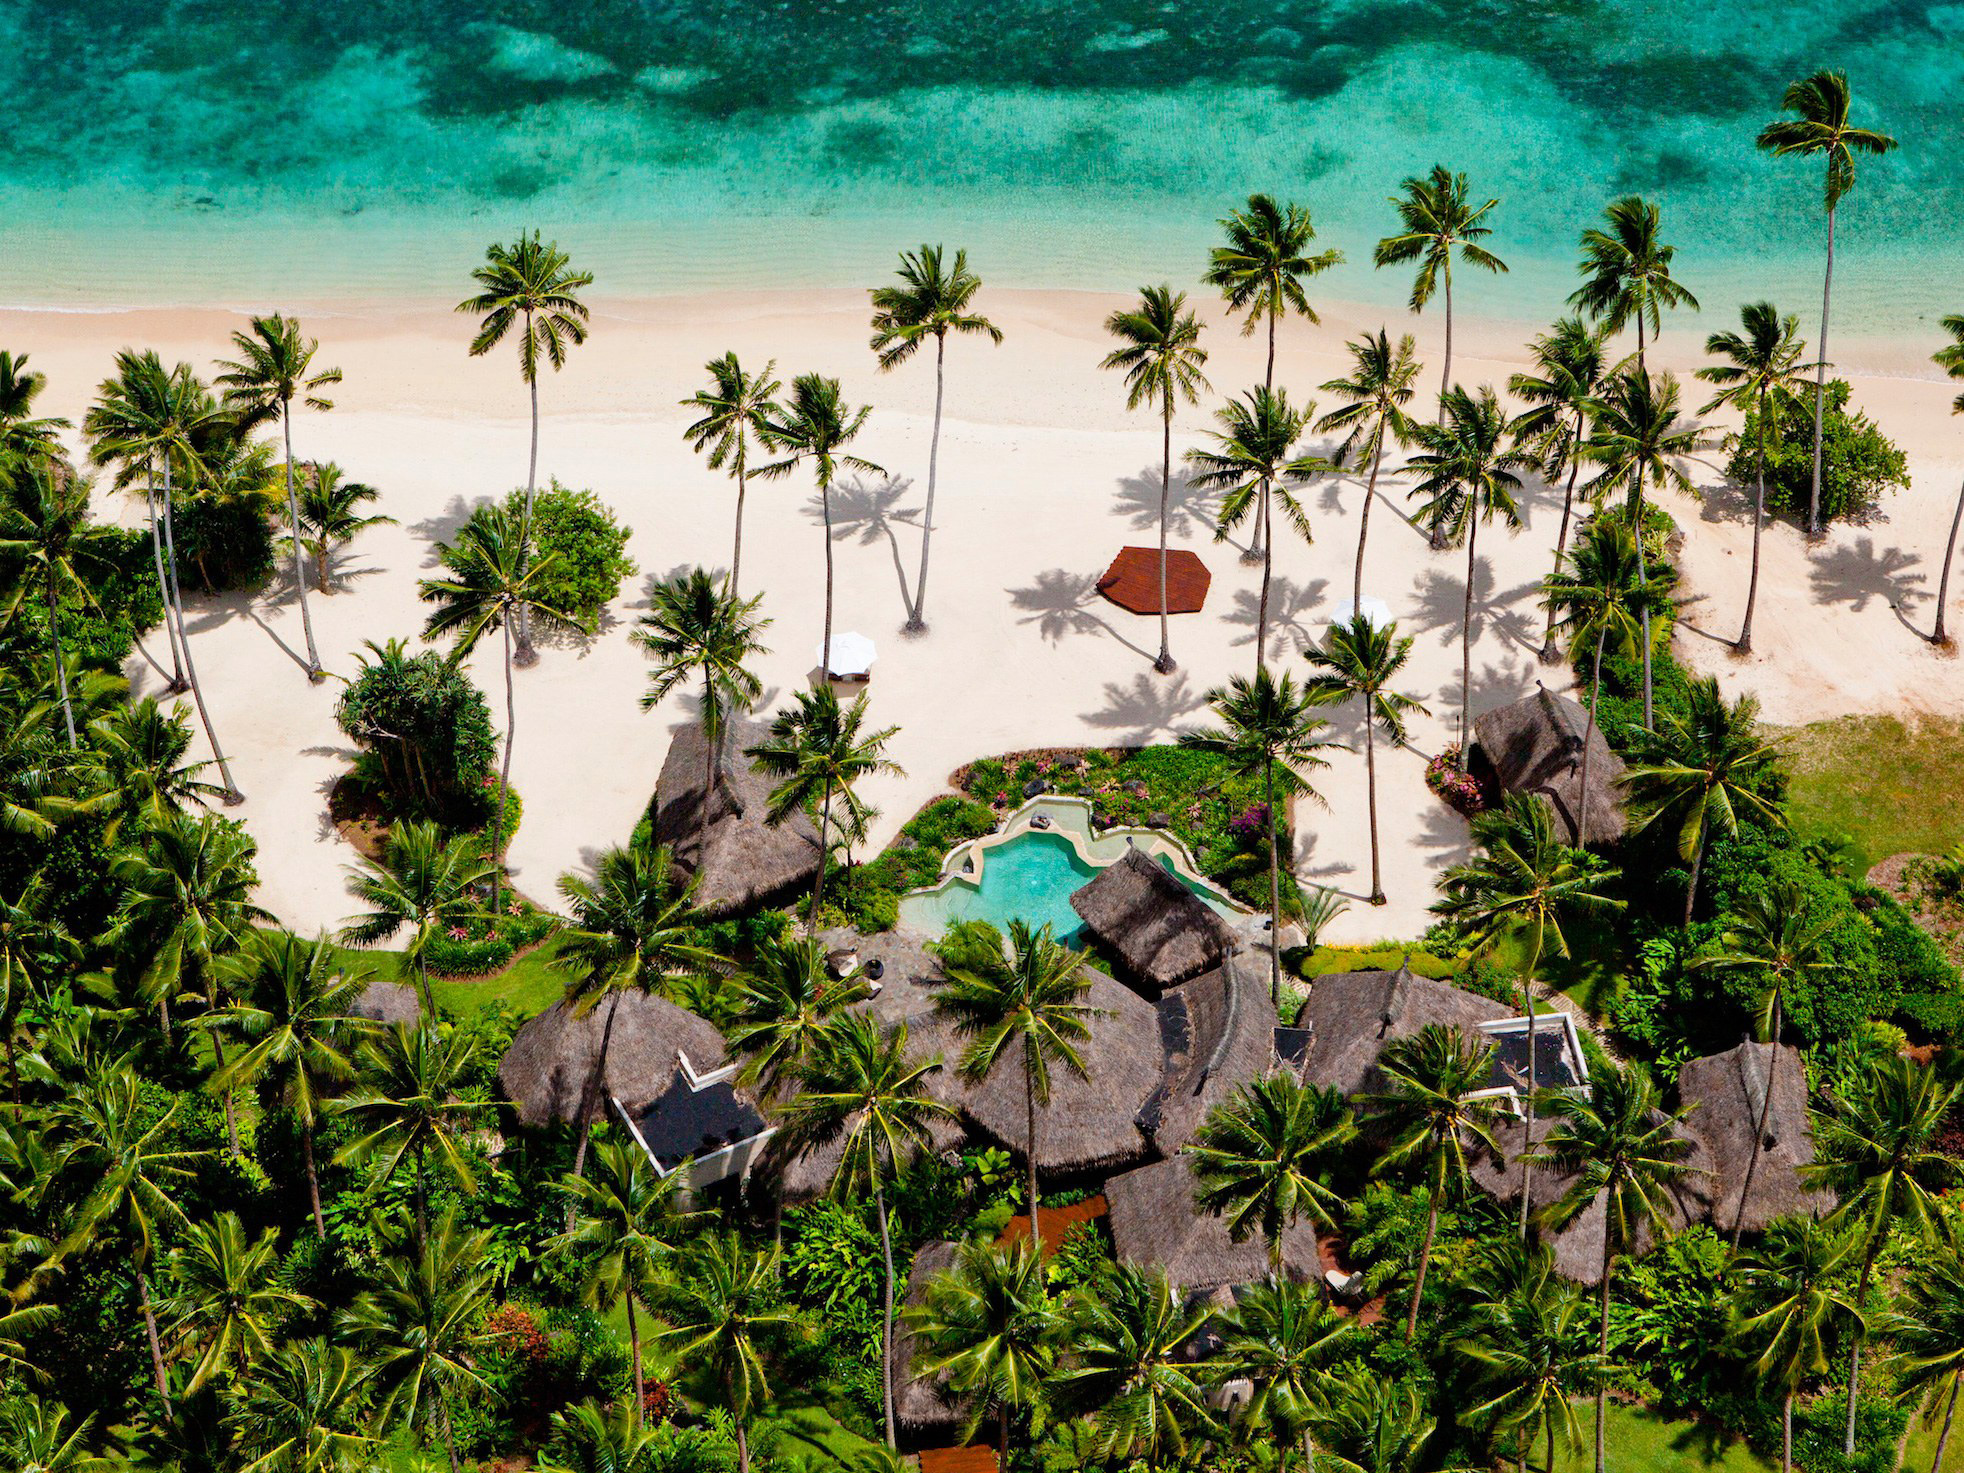 15 Luxurious Private Island Resorts to Consider for Your Honeymoon